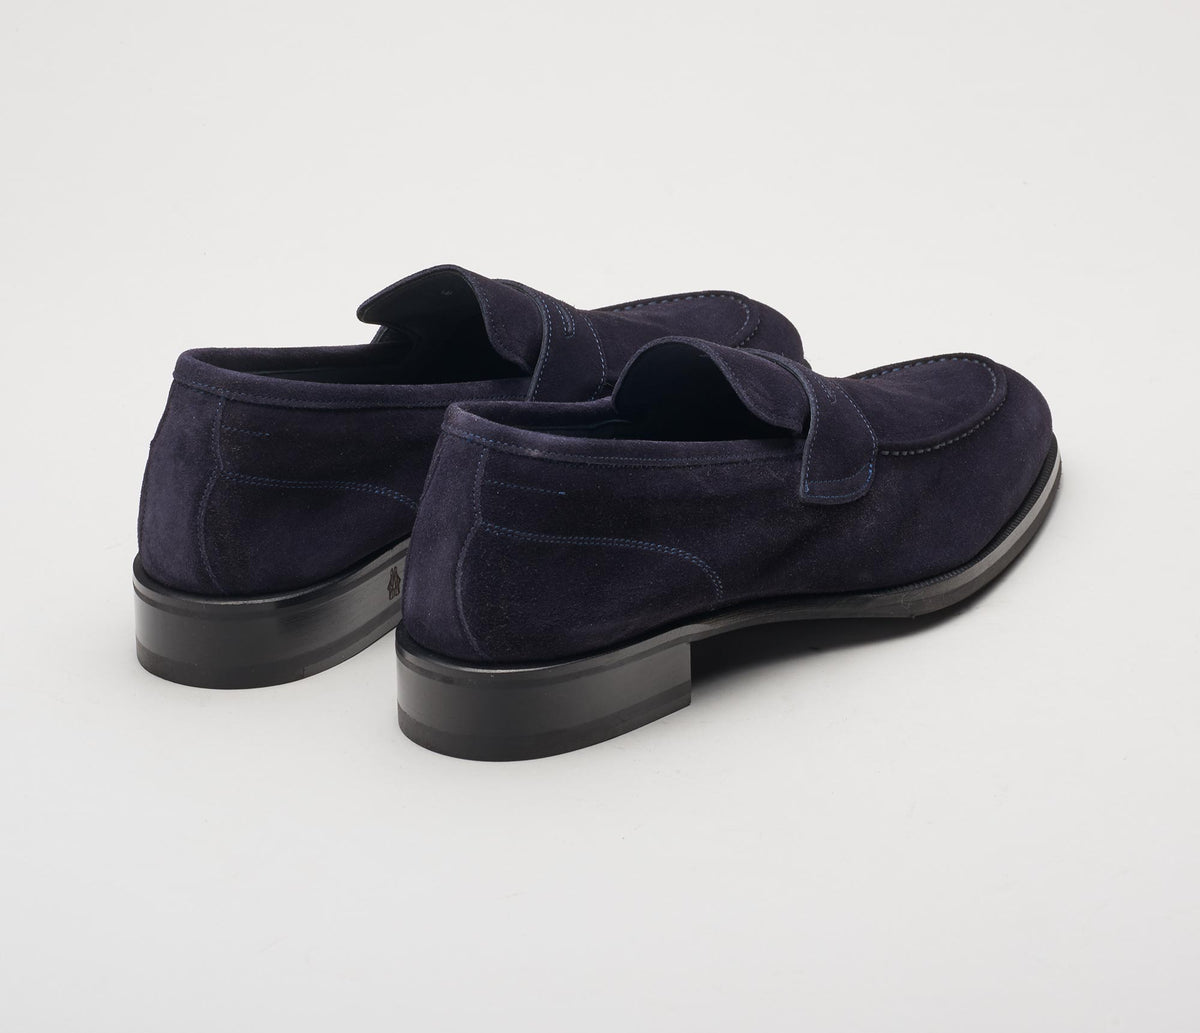 The Brera Navy Men's Suede Loafers